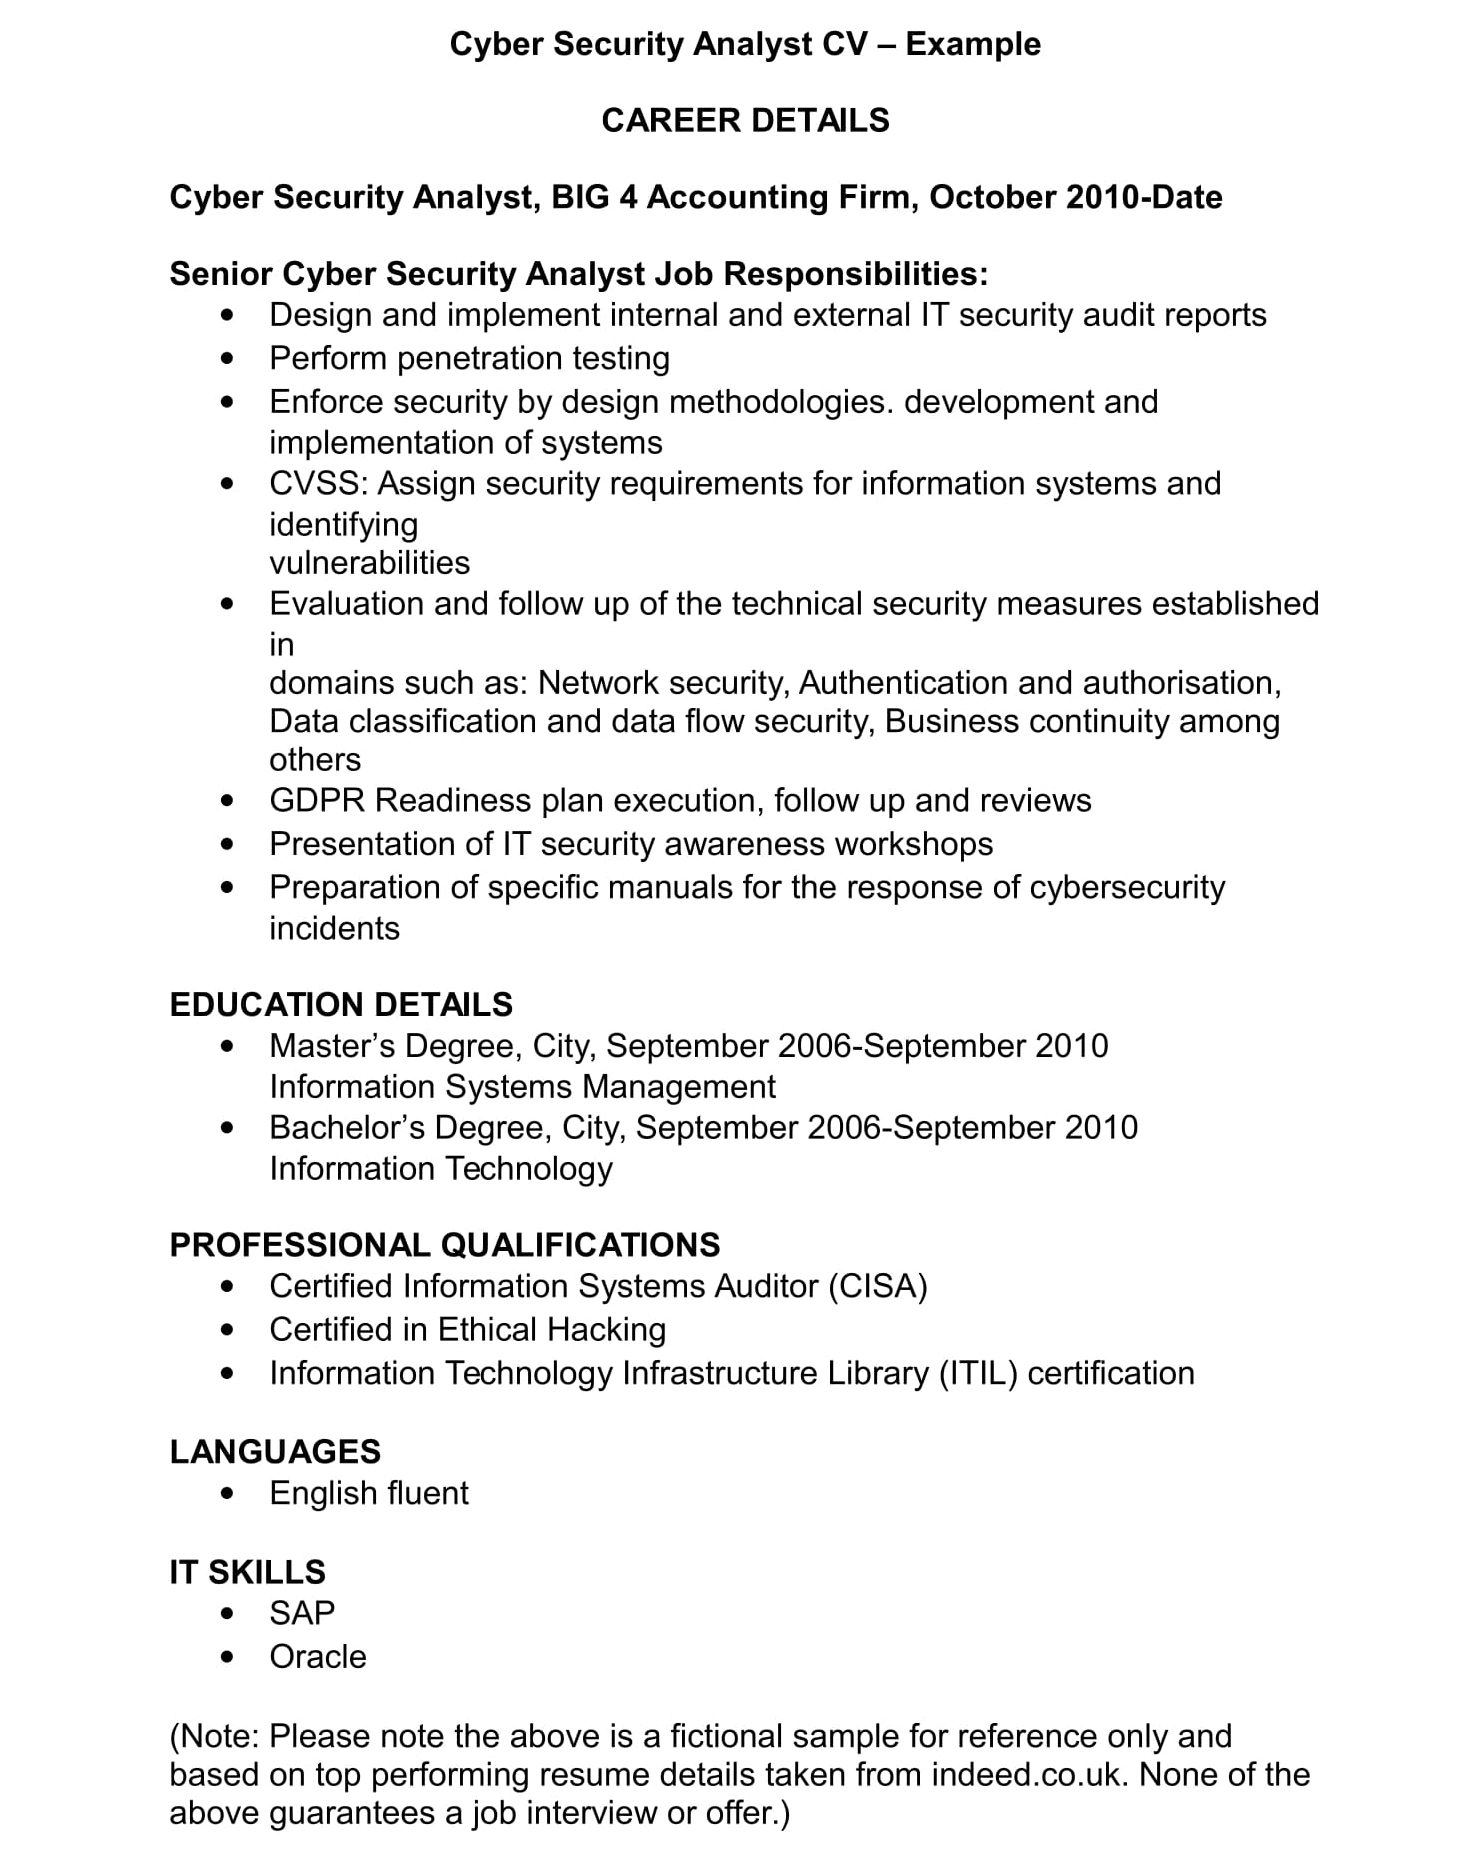 cyber security cv template and examples renaix cybersecurity resume analyst example entry Resume Cybersecurity Resume Examples